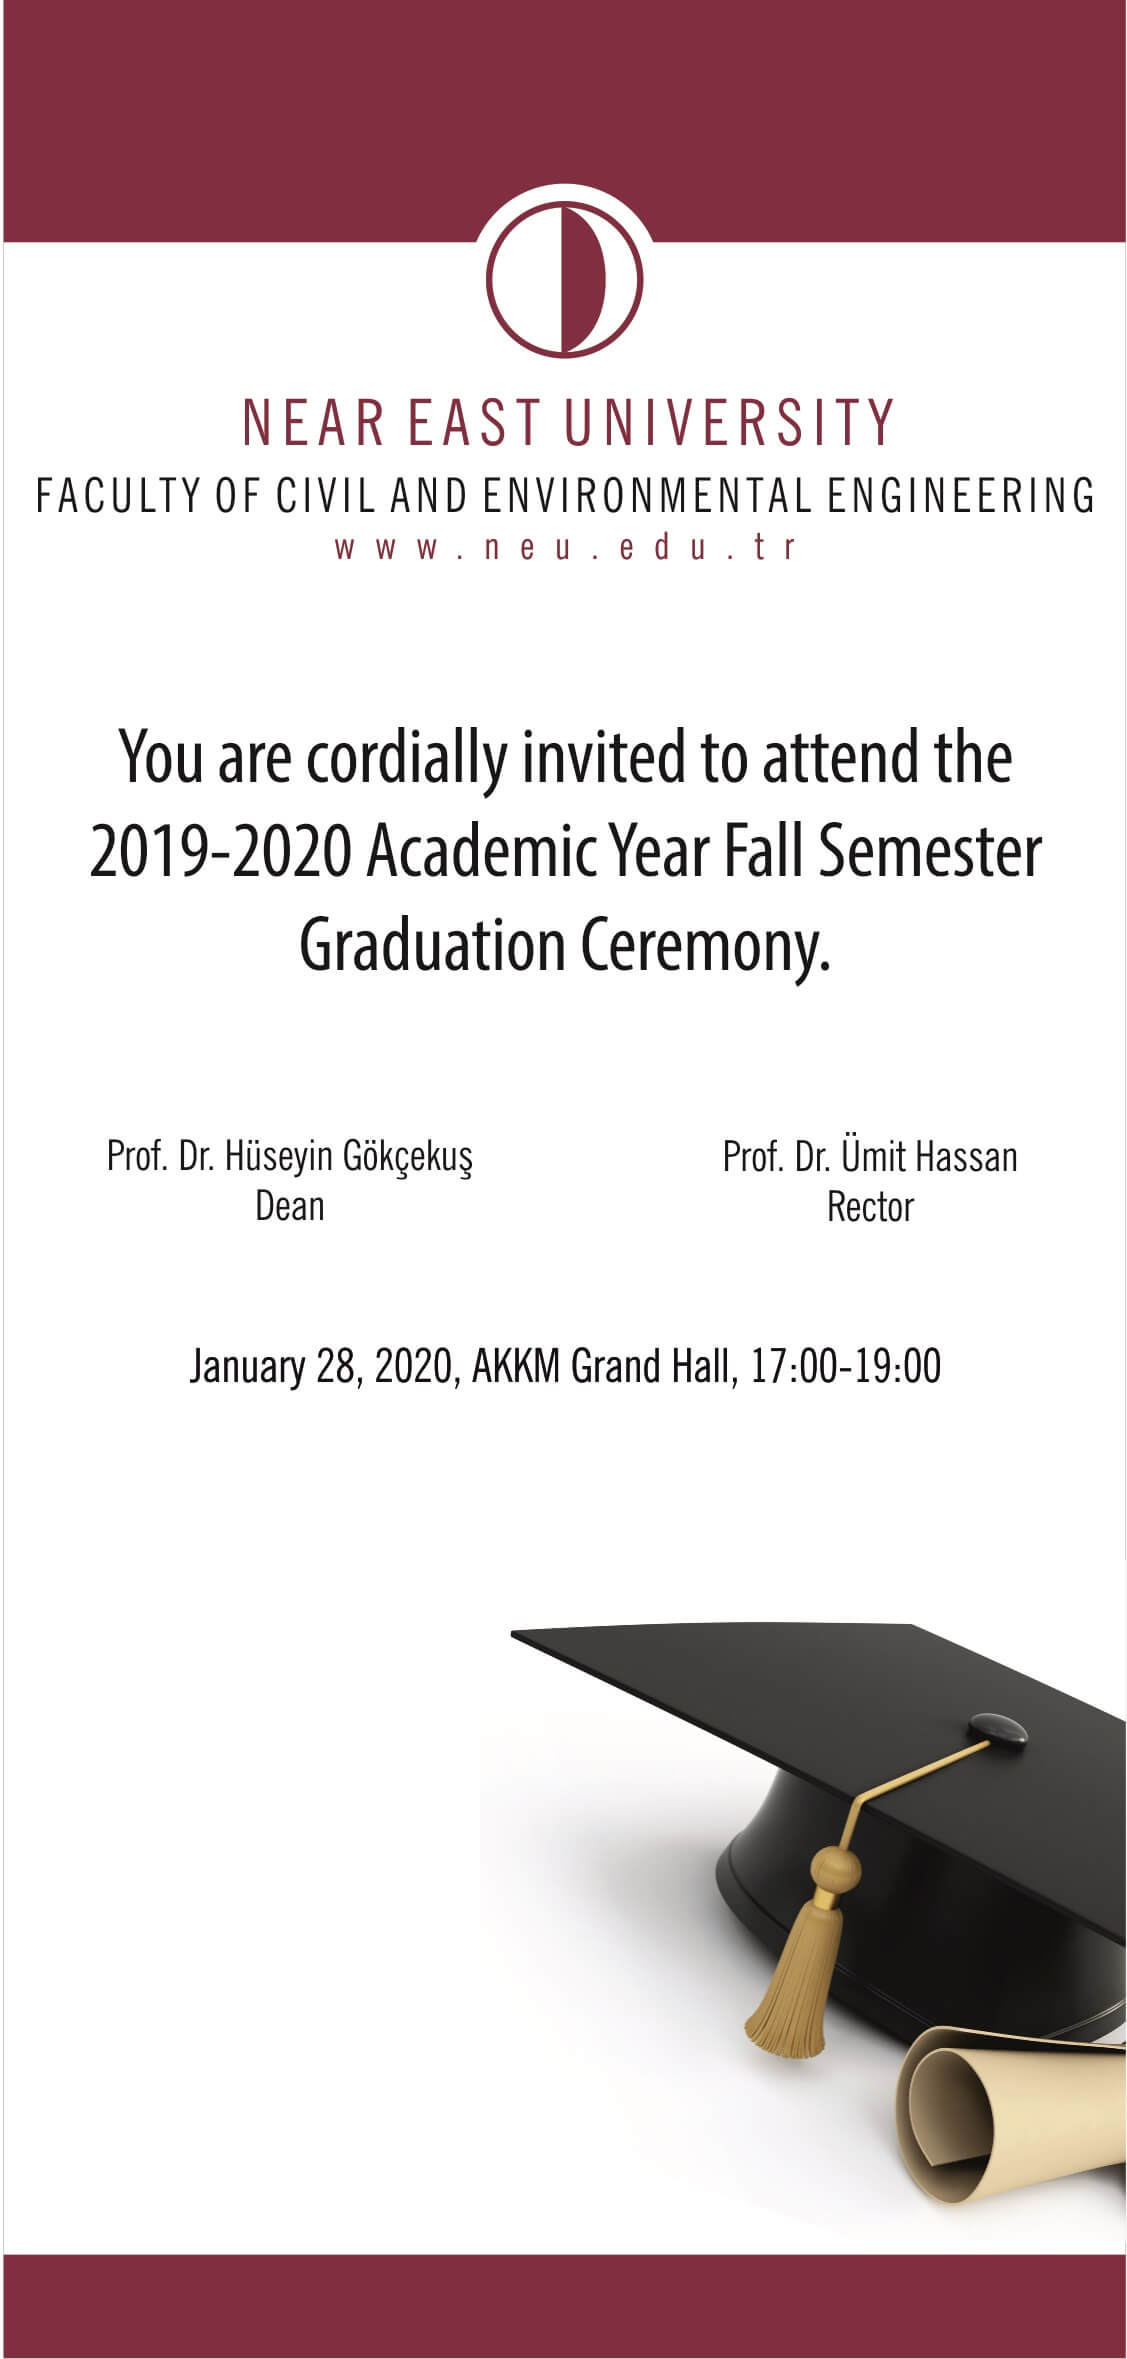 Faculty of Civil and Environmental 2019-2020 Academic Year Fall Semester Graduation Ceremony